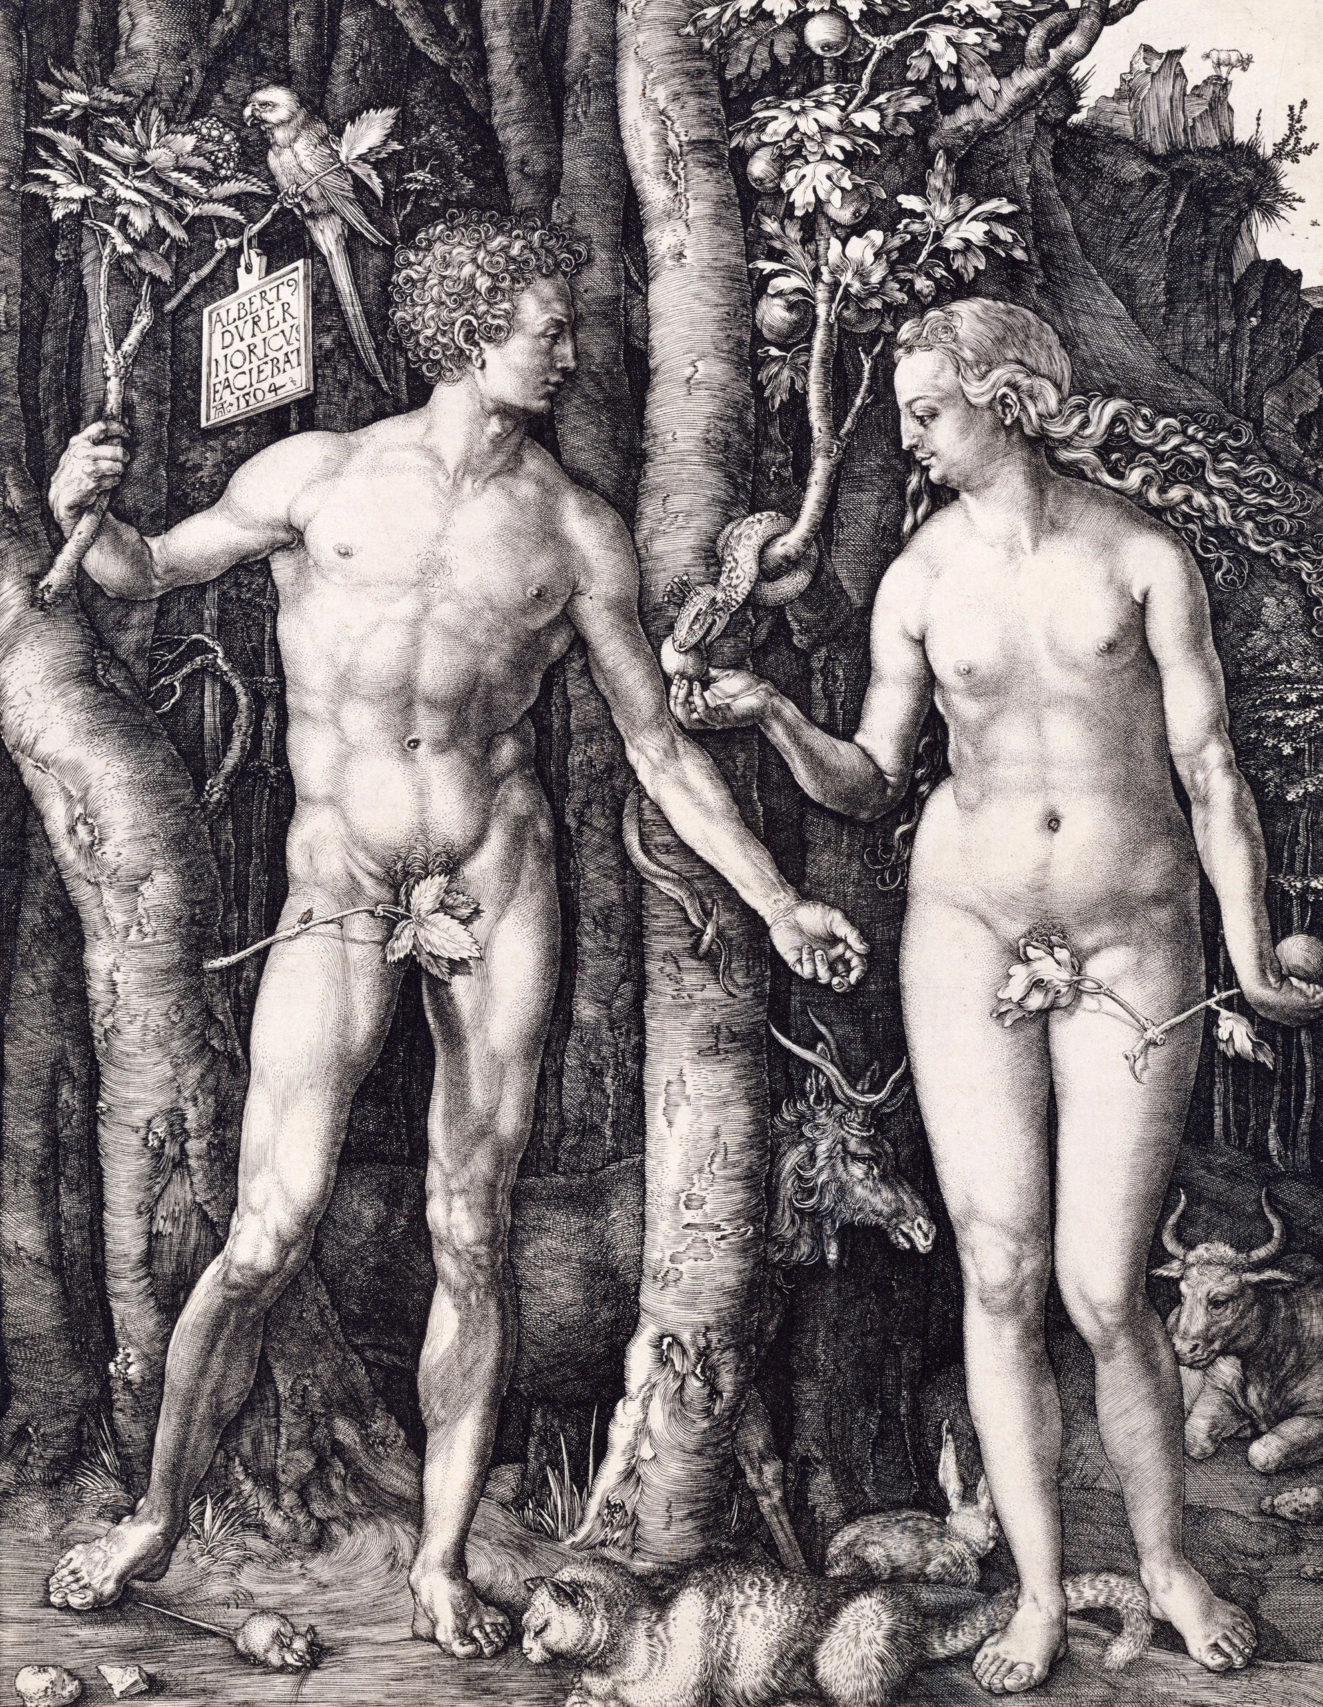 Adam And Eve Sex Pics a dangerous couple: the story of adam and eve - tingis magazine